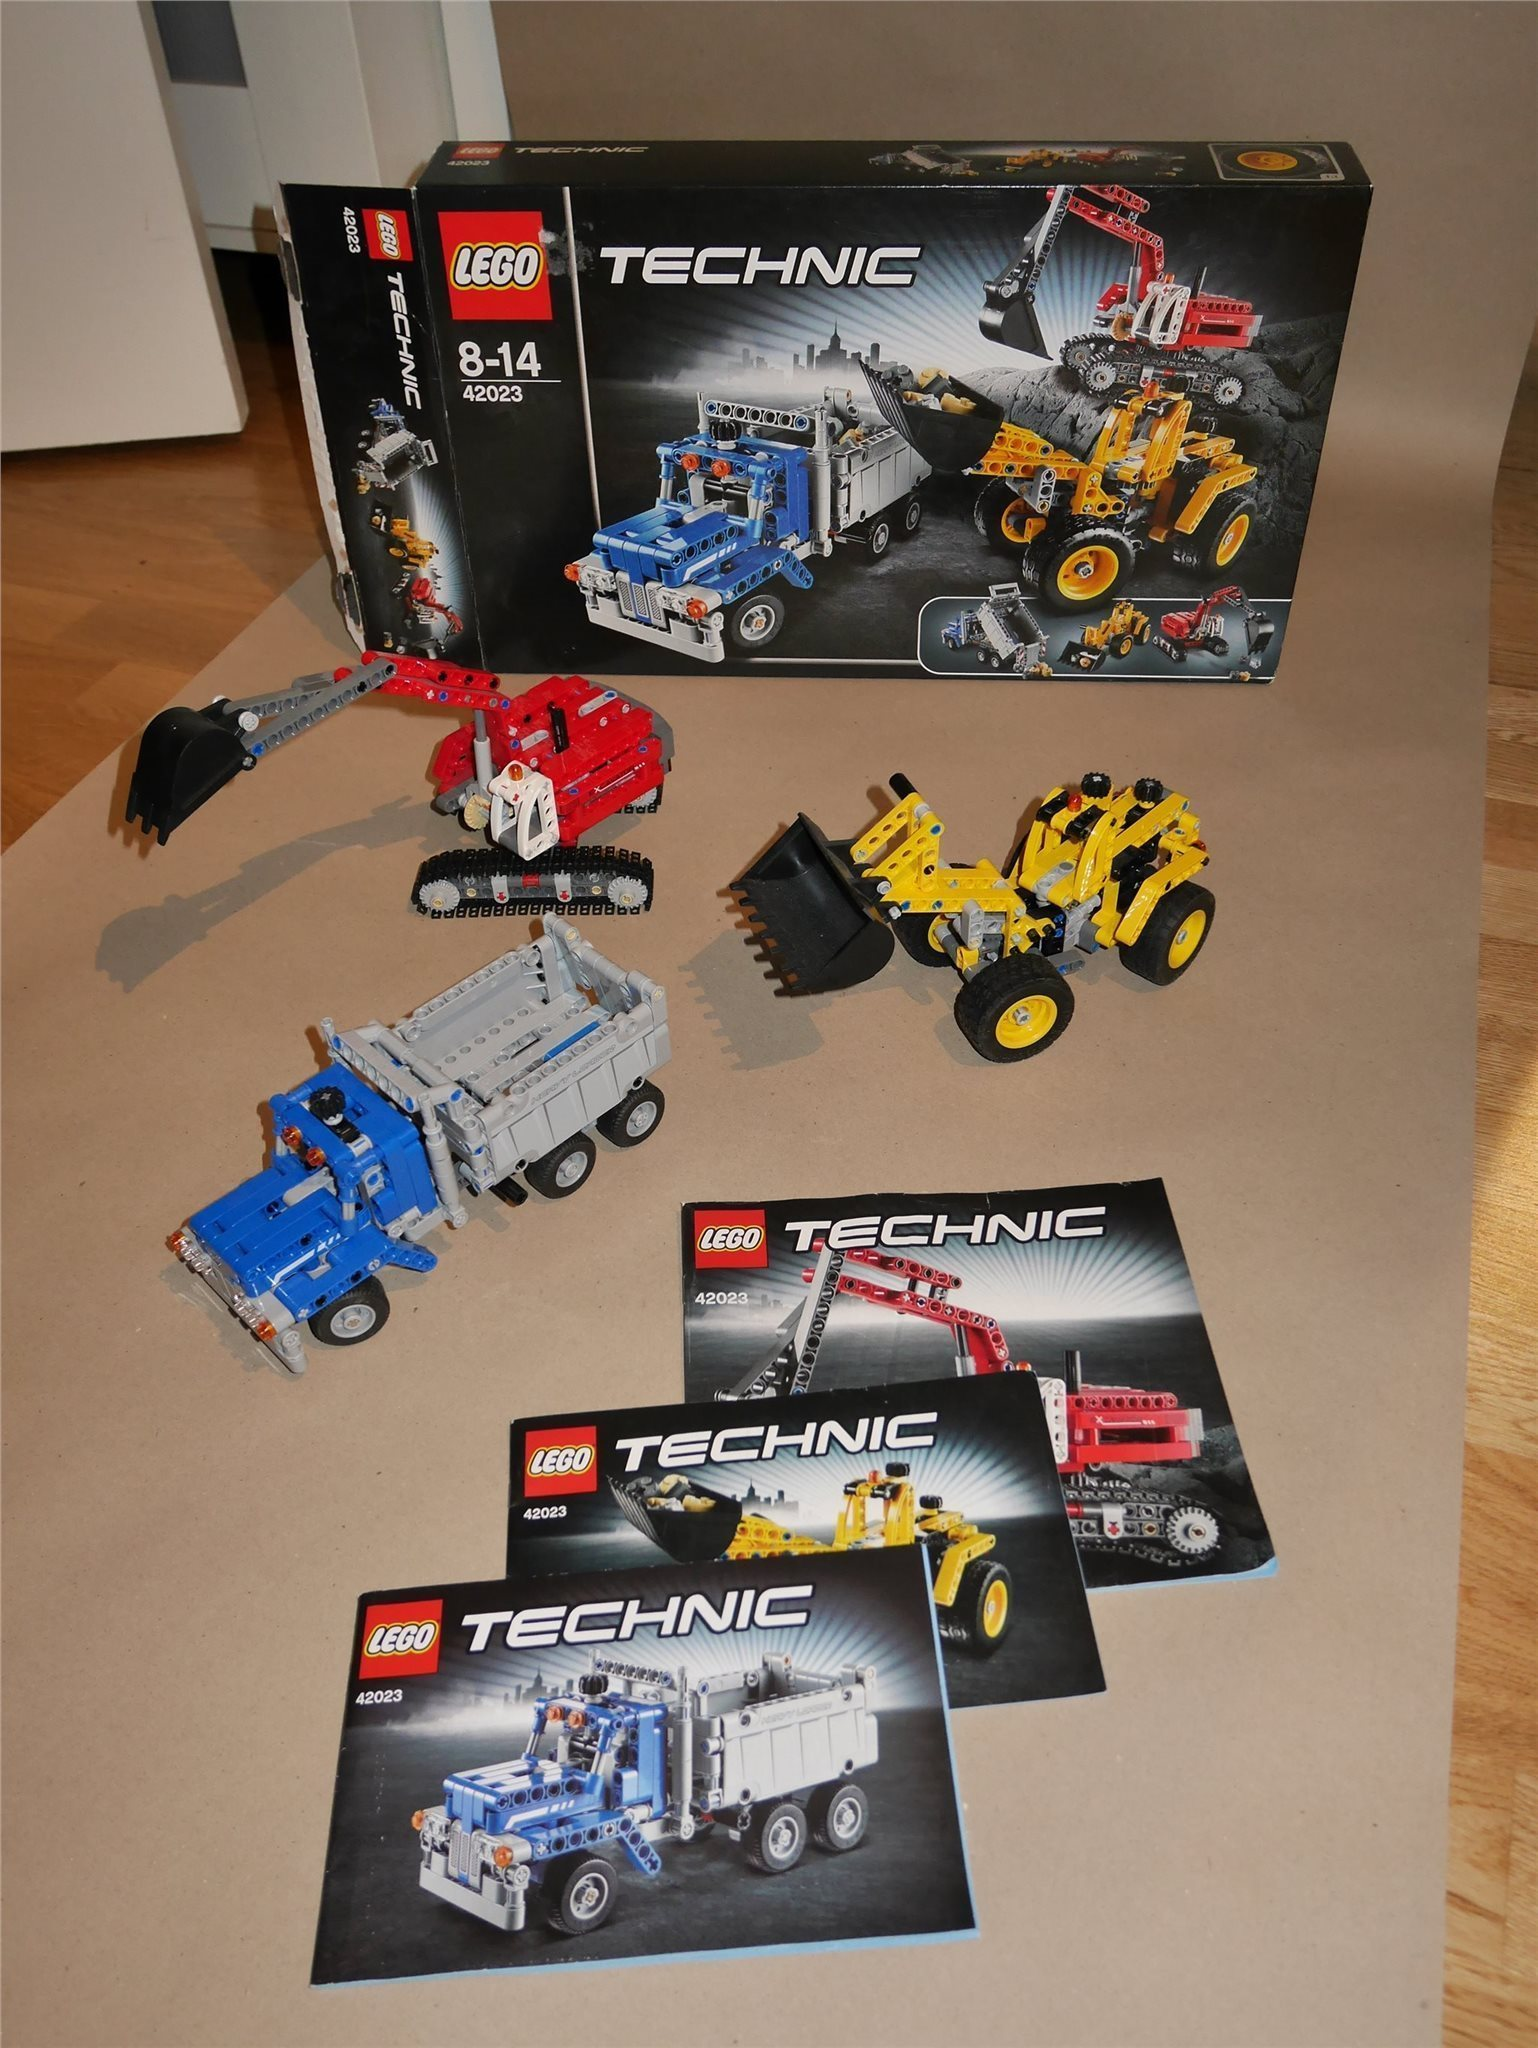 LEGO Technic 42023 Byggfordon / Komplett med manual och kartong